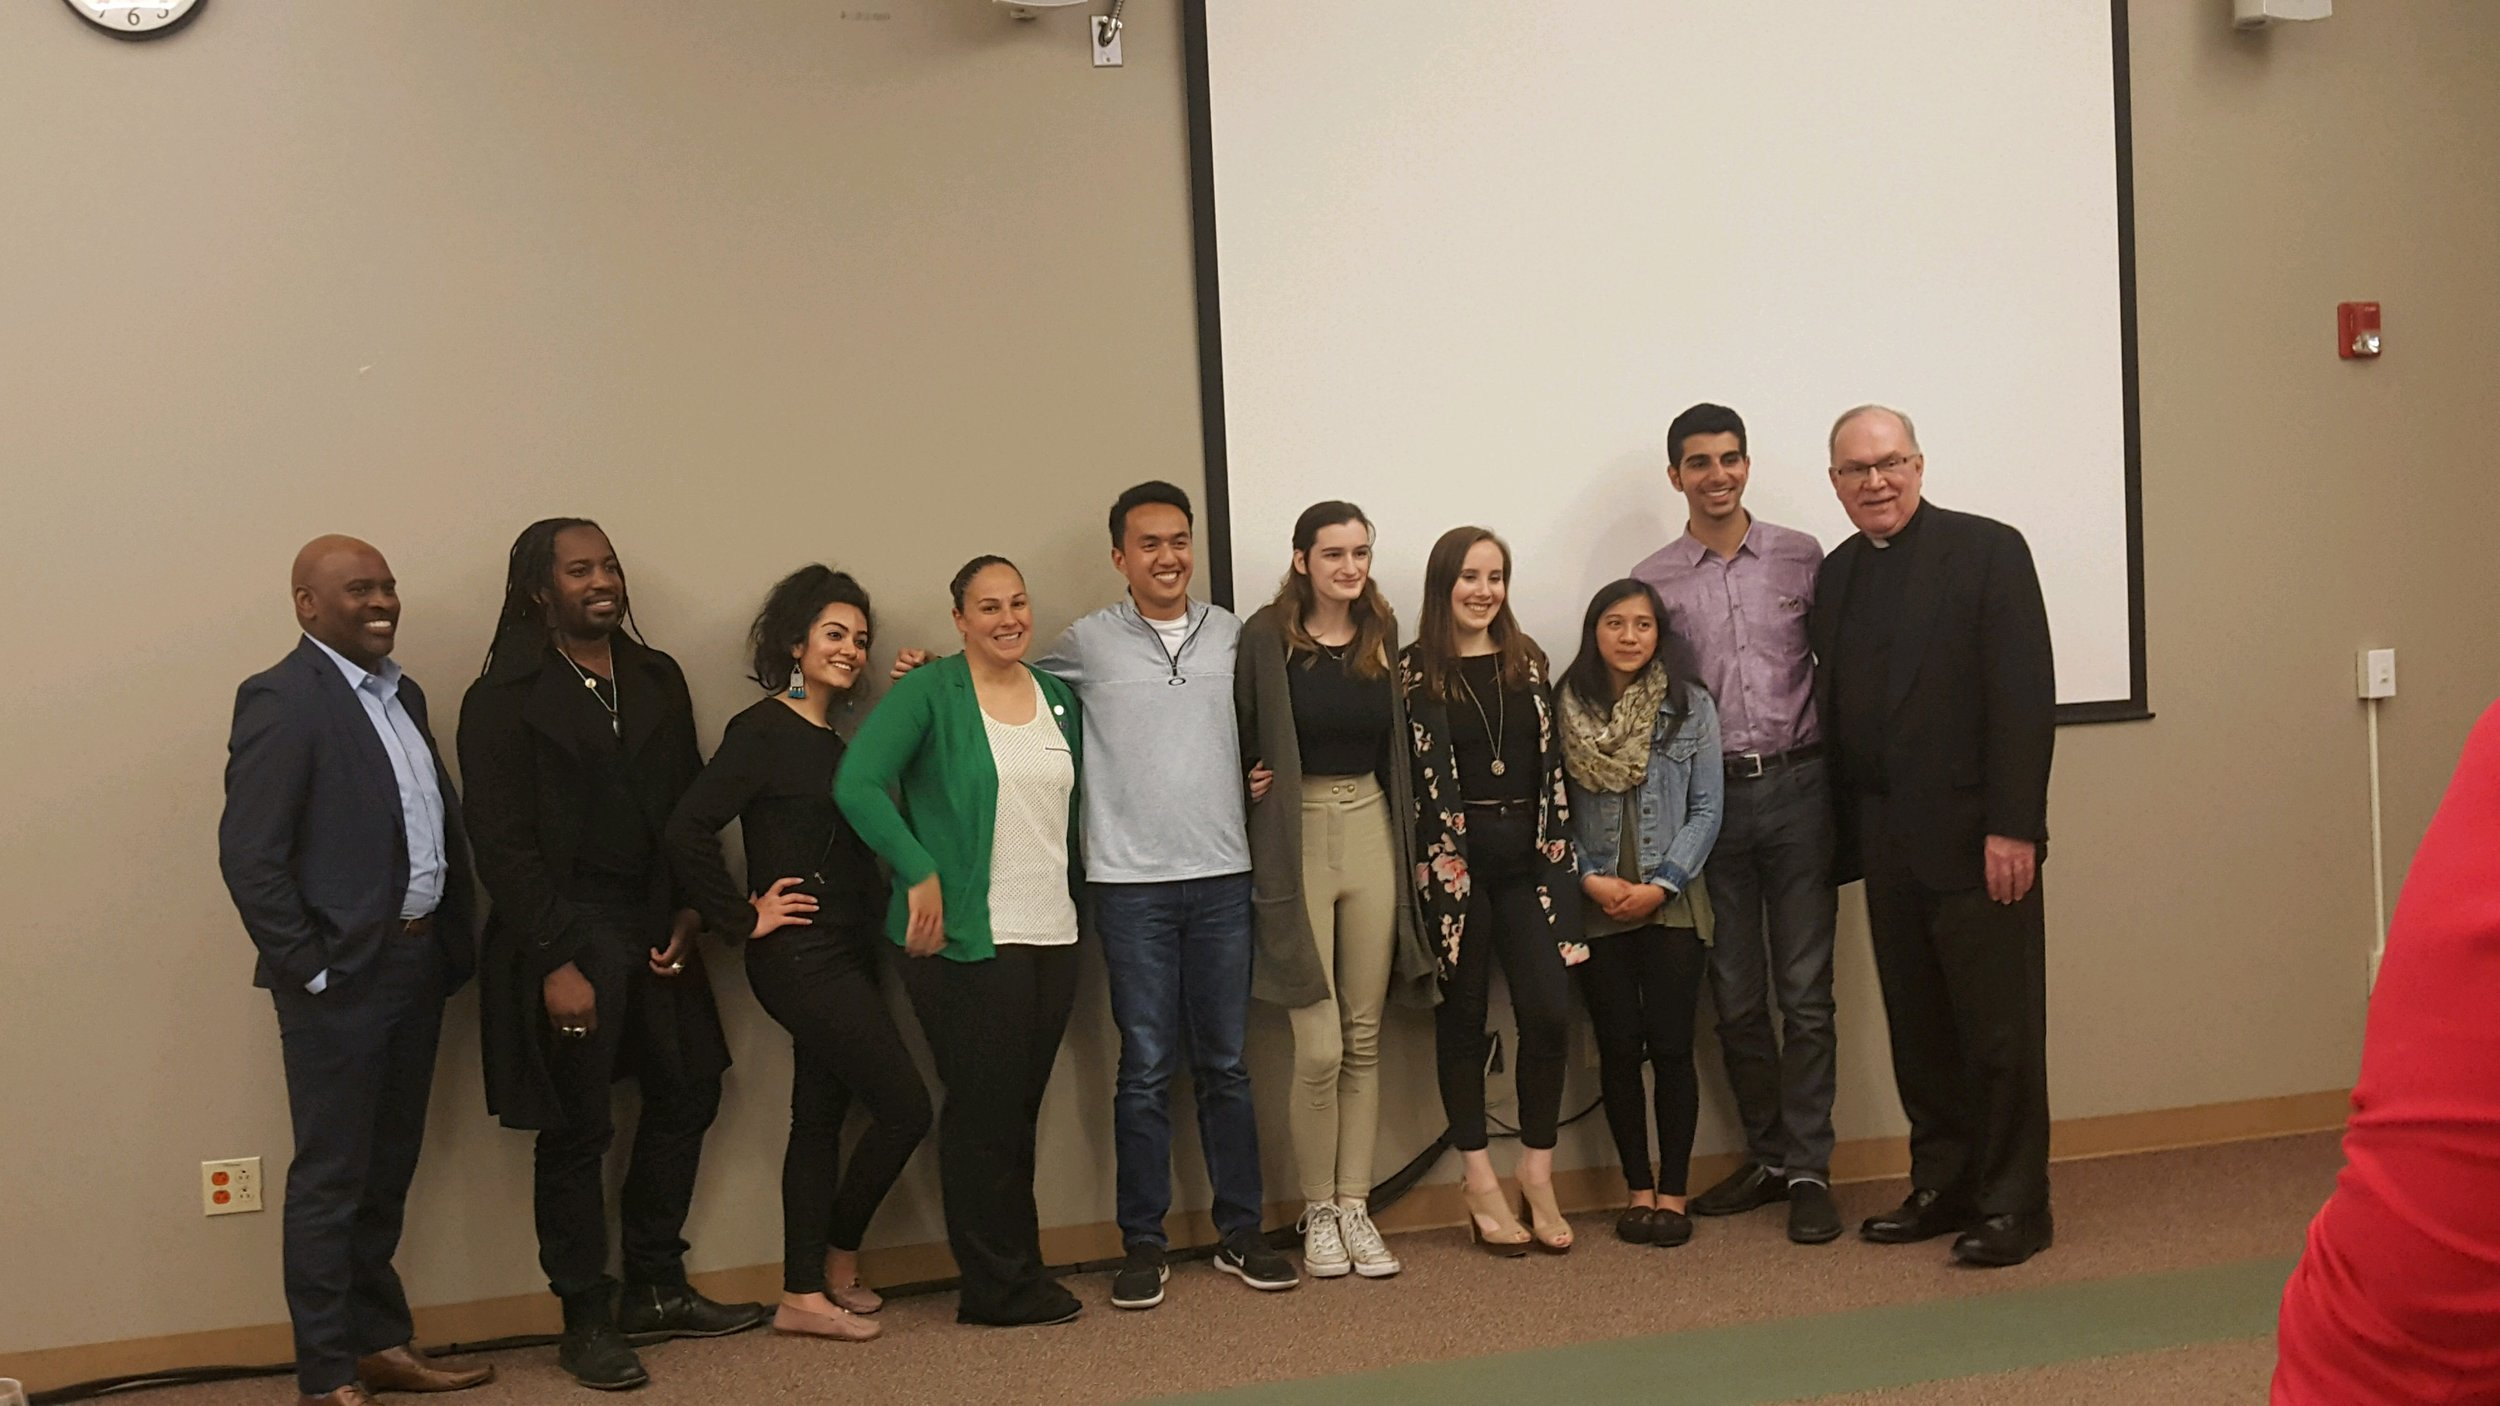 The 2019 cohort of Ignatian Leaders with Seattle University President Stephen Sundborg, S.J.